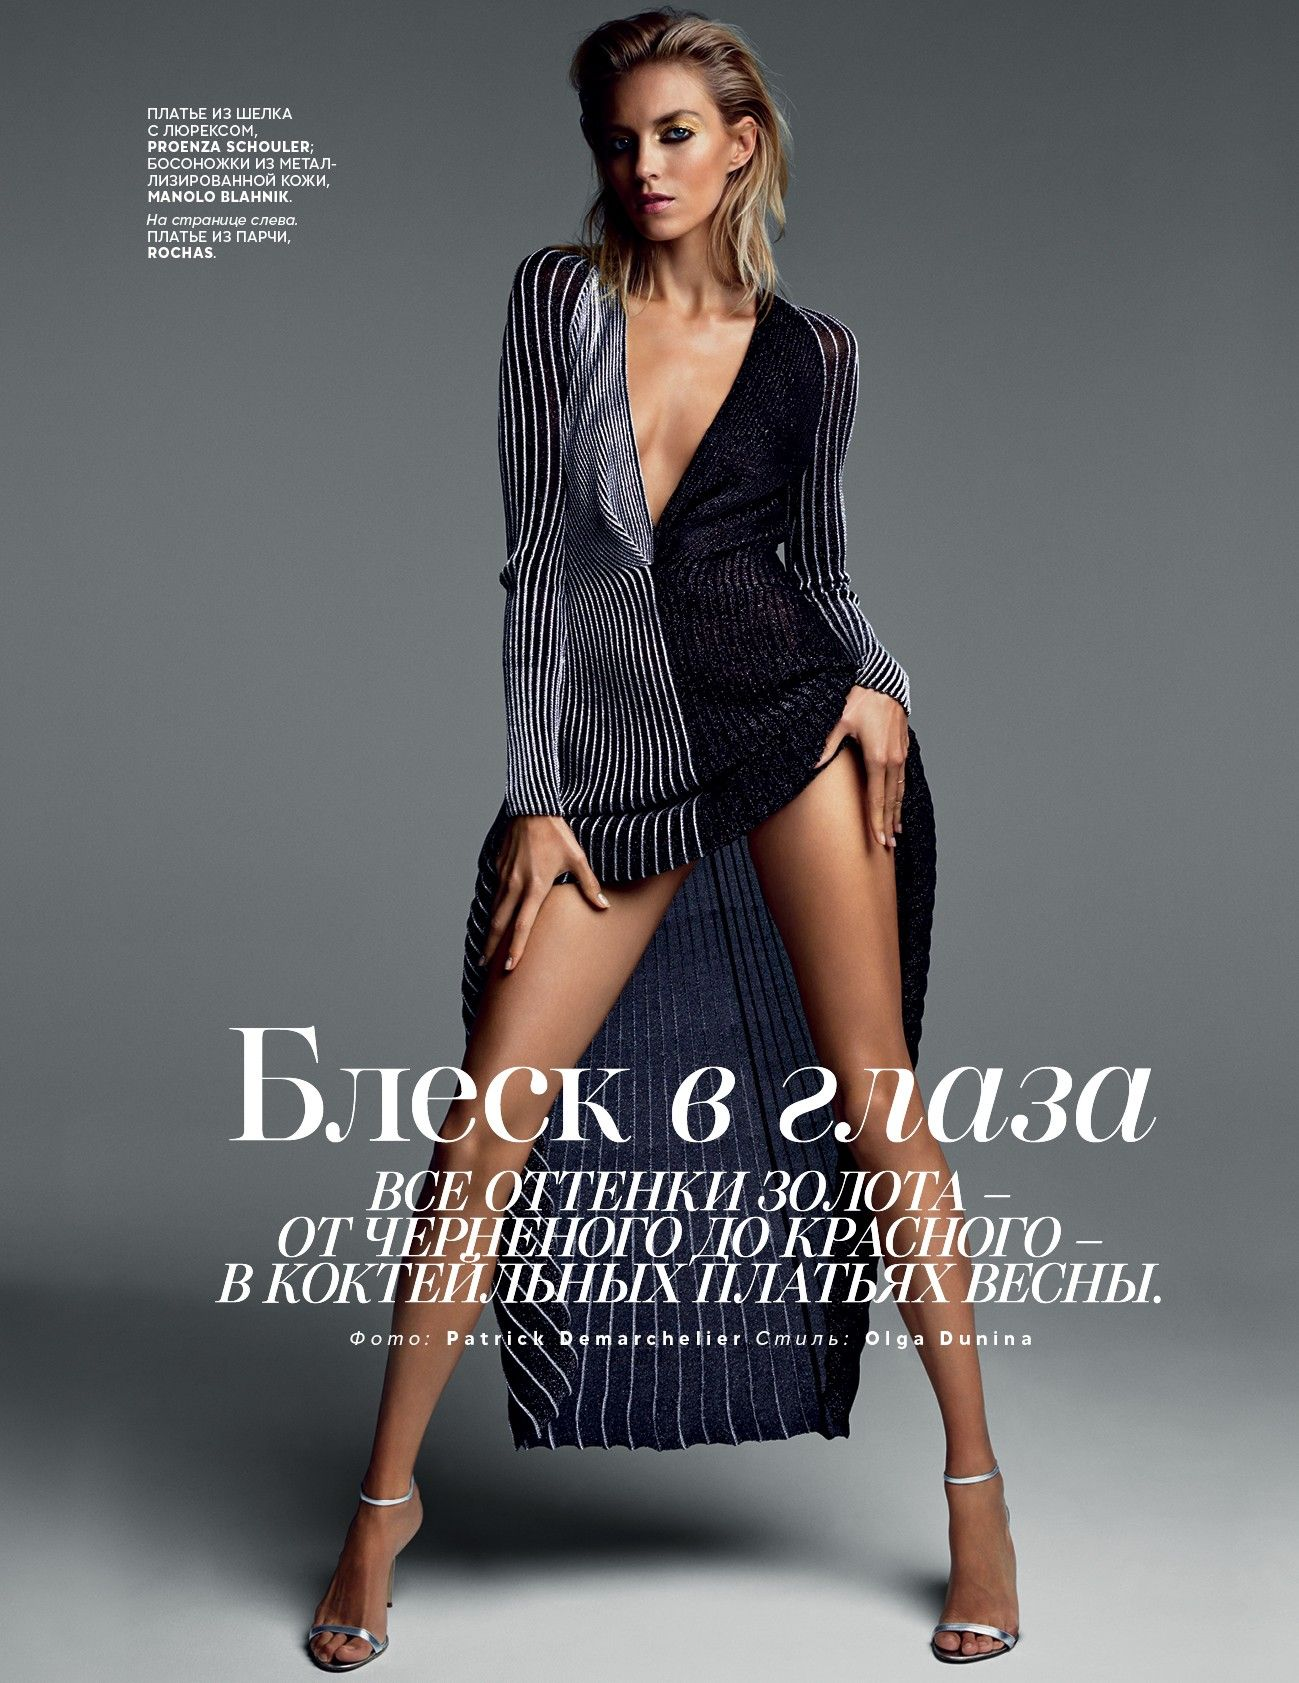 Stunning Anja Rubik (Poland) wows in a sexy cover story for Vogue Russia's March issue /  Photographed by Patrick Demarchelier and styled by fashion editor Olga Dunina